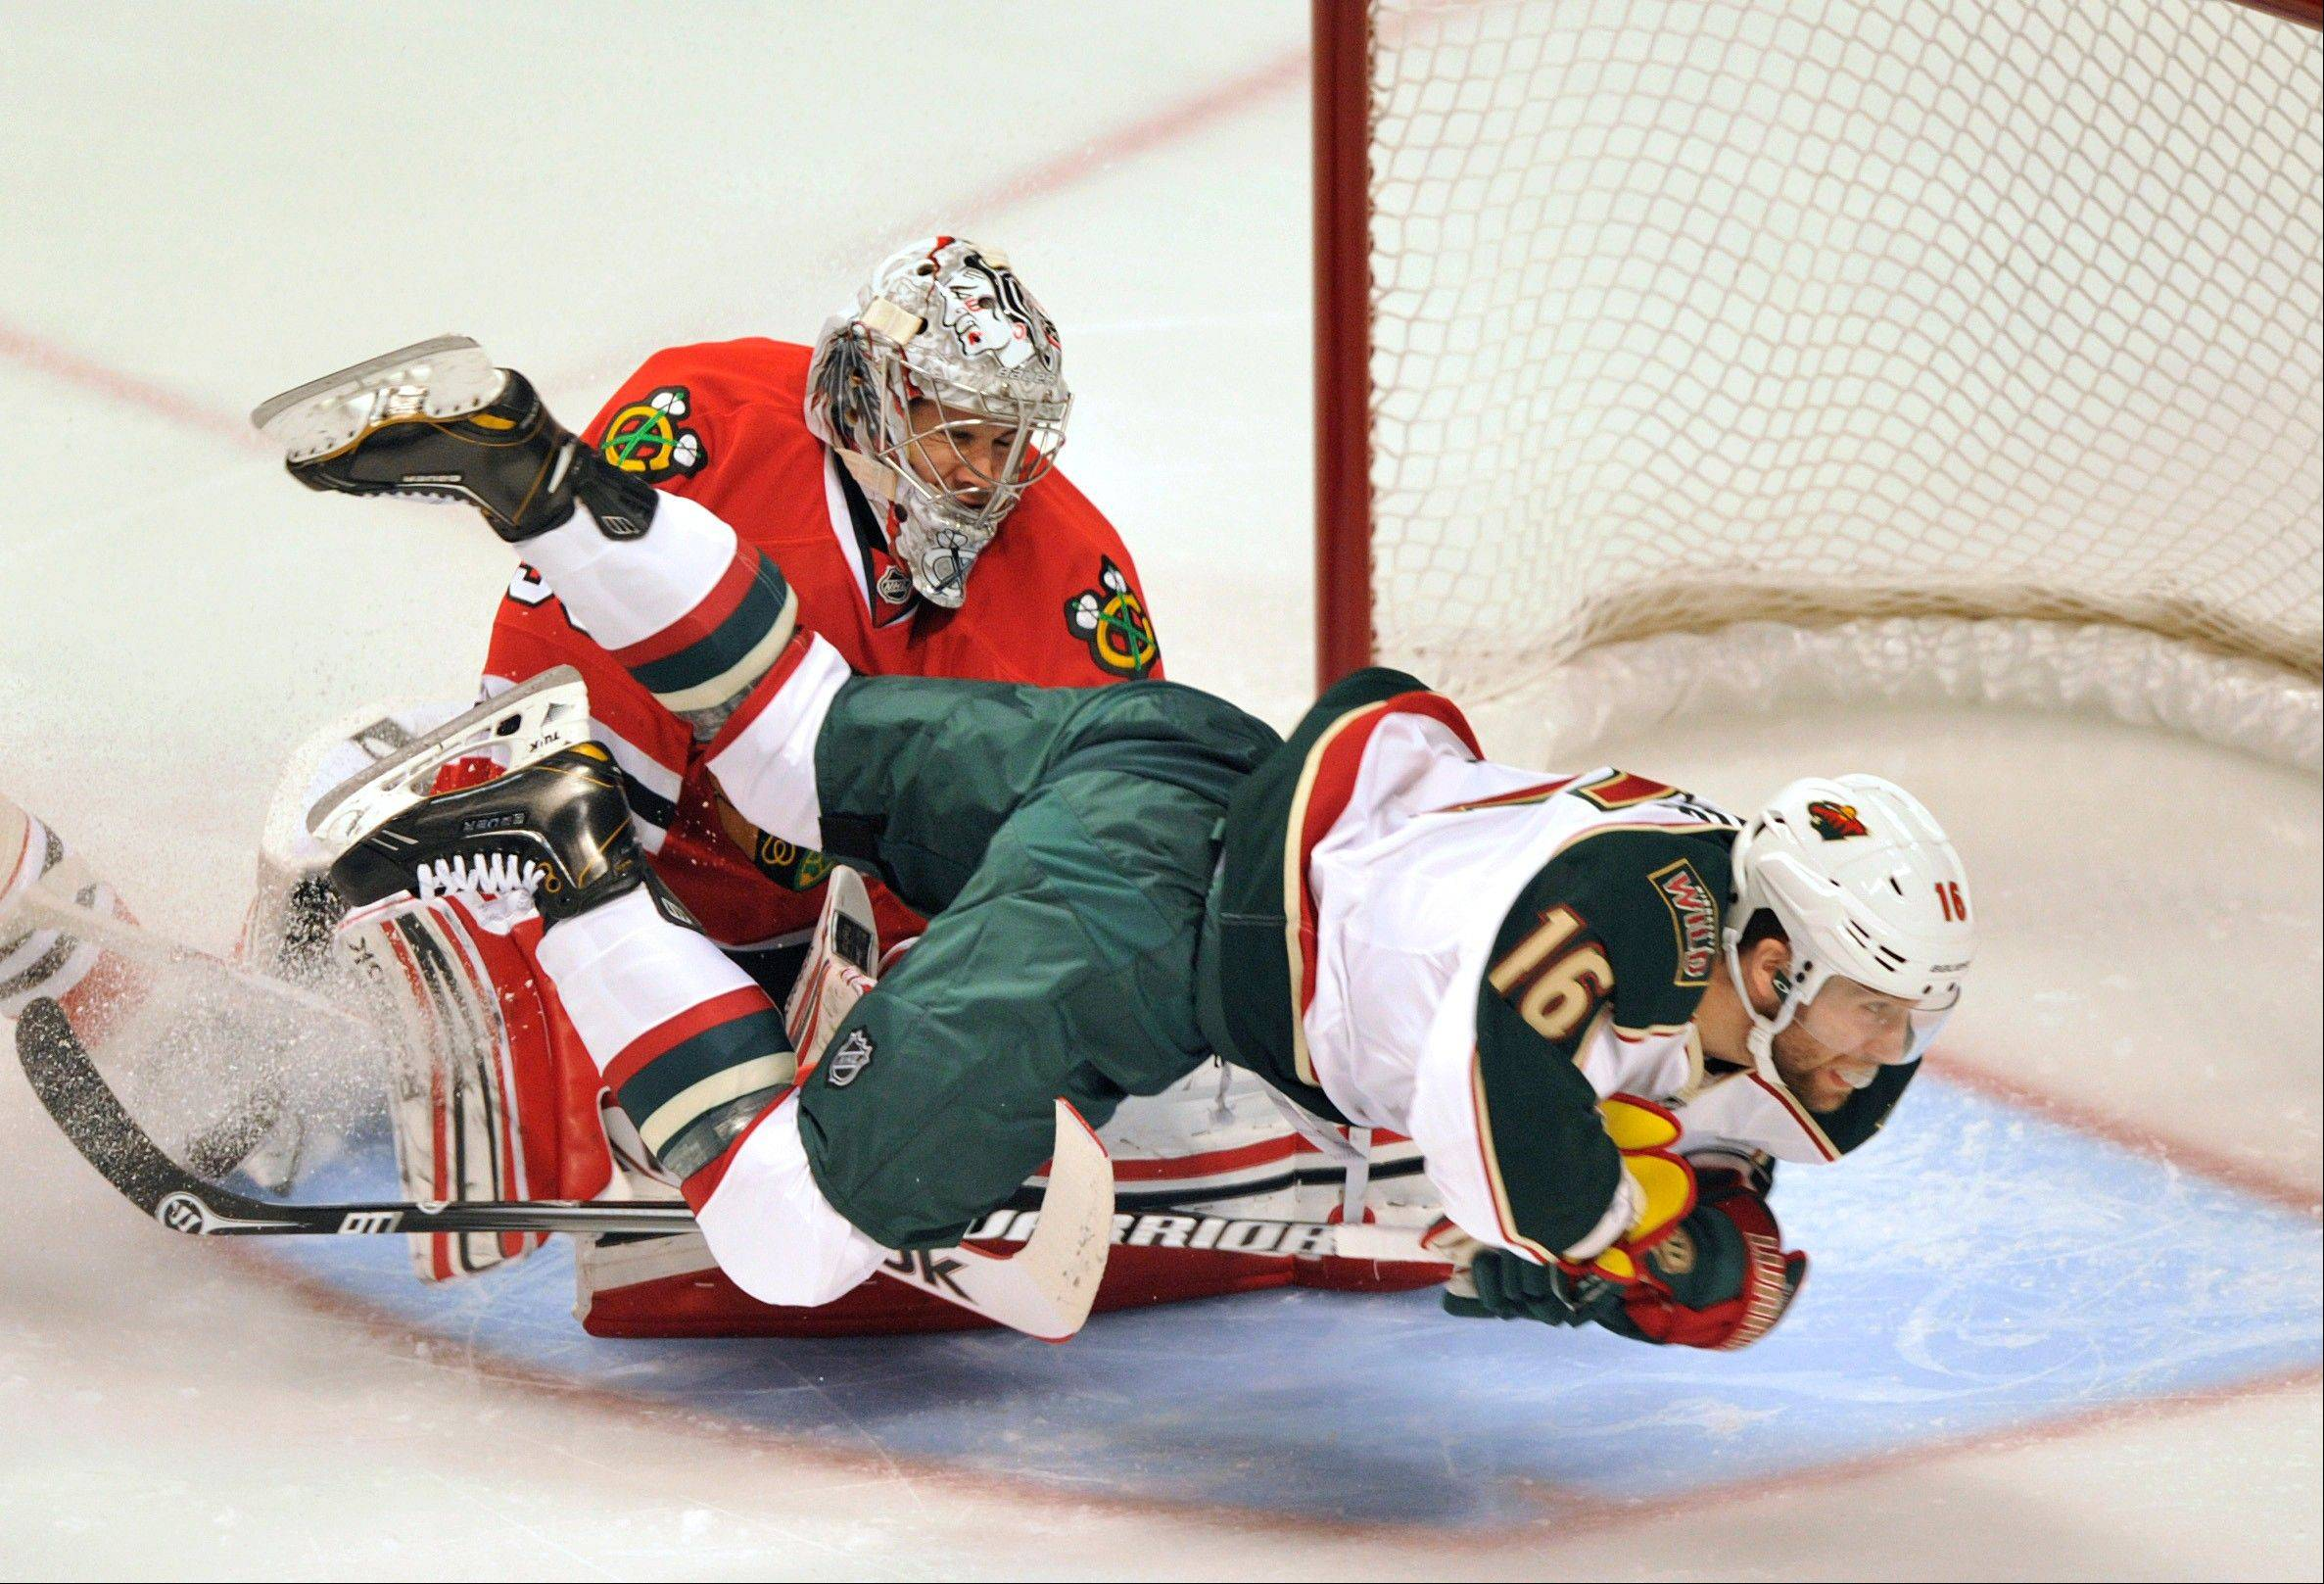 Minnesota Wild's Jason Zucker (16) collides with Chicago Blackhawks' Corey Crawford during the first period of Game 1 of an NHL hockey Stanley Cup playoff series, Tuesday, April 30, 2013, in Chicago.